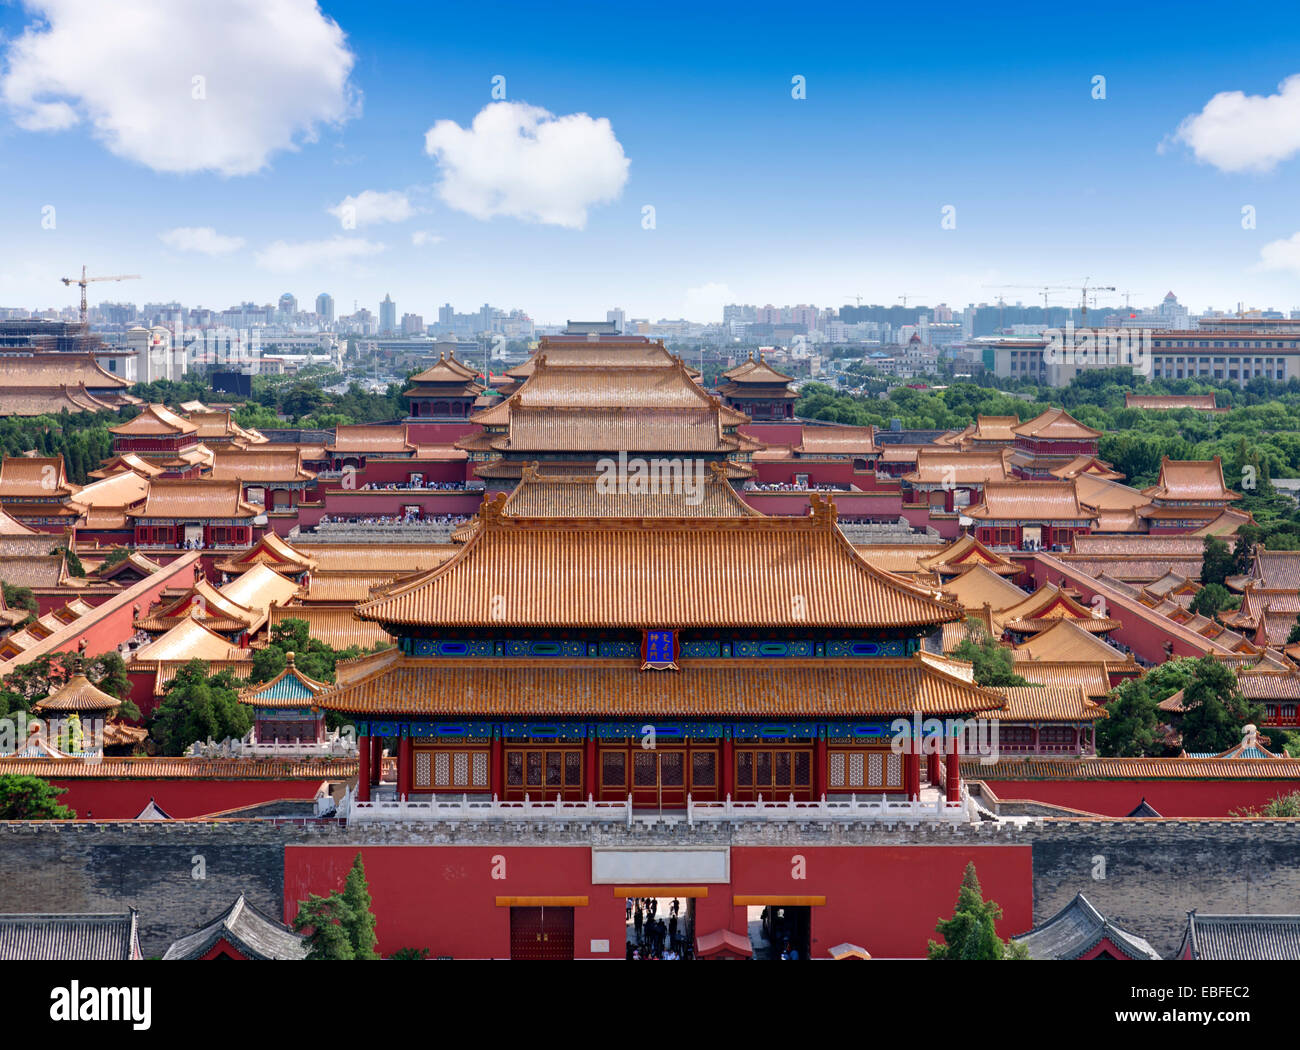 Aerial View Of The Forbidden City Beijing China